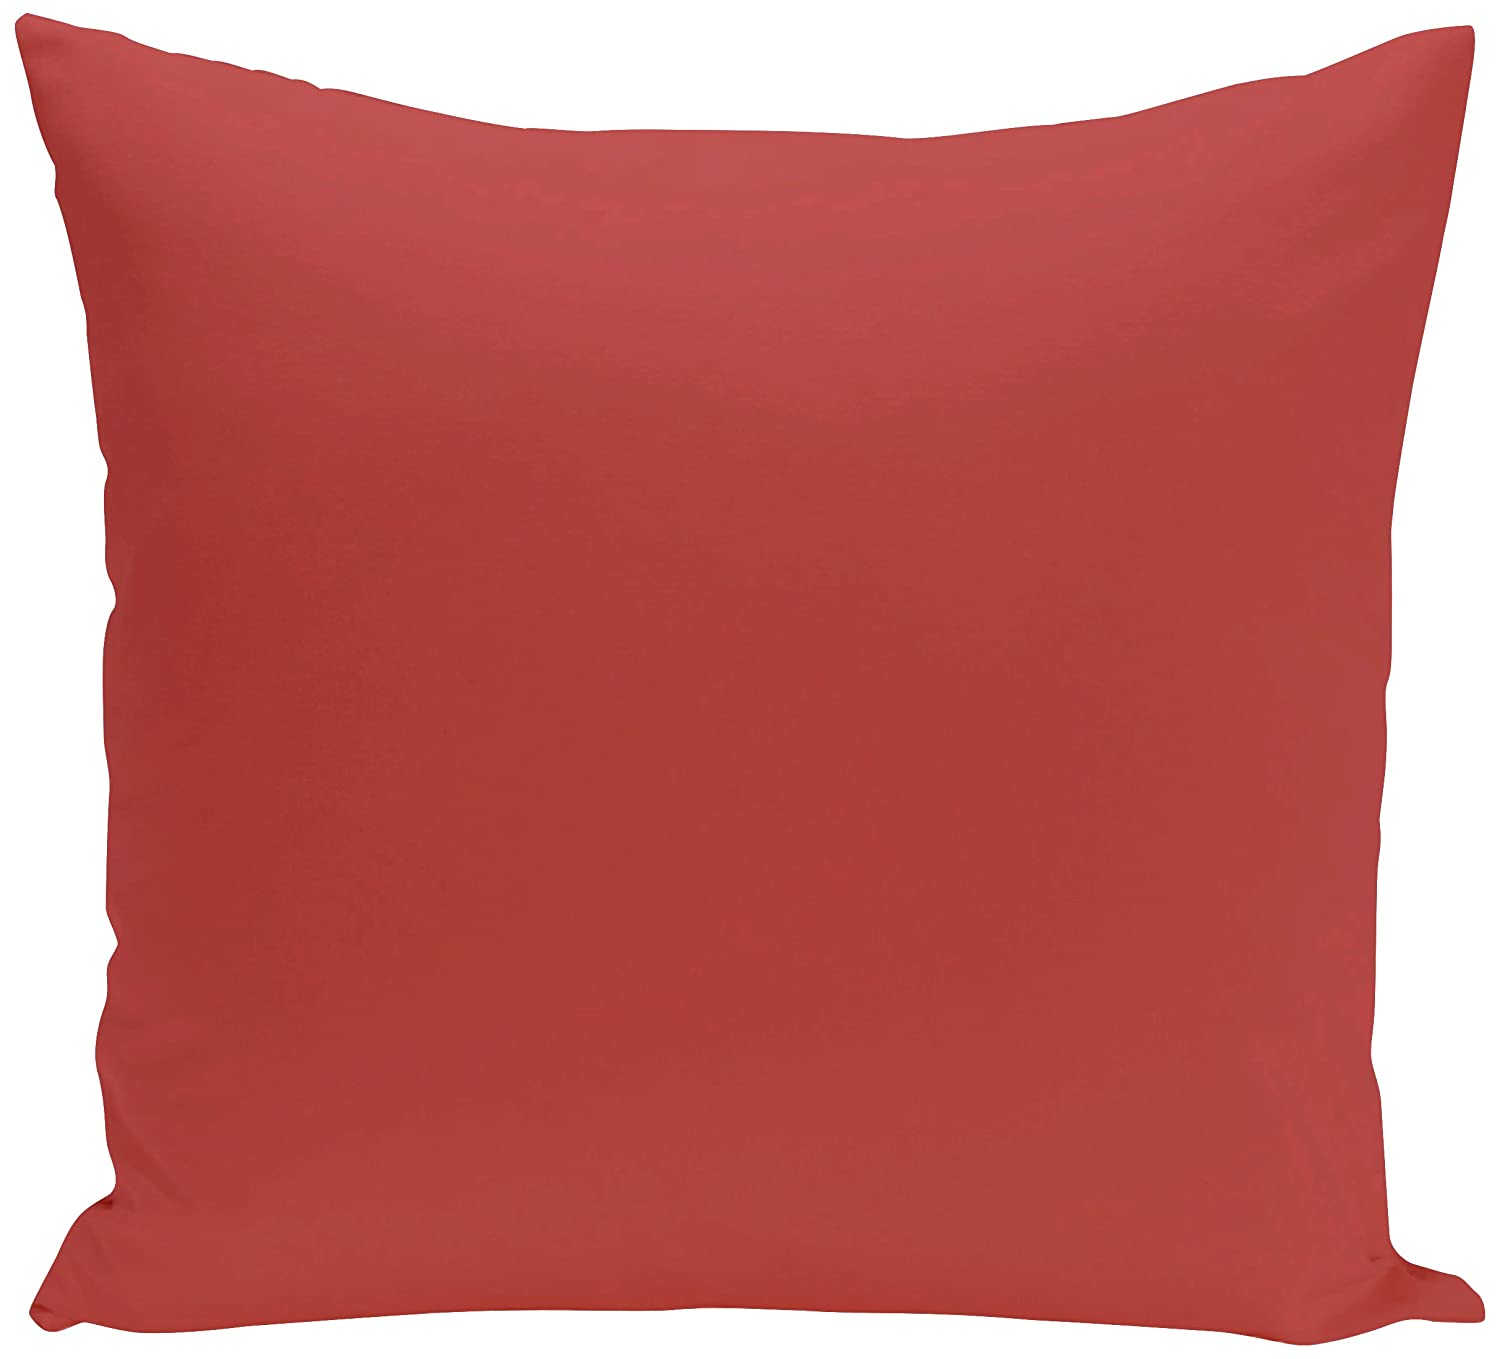 E by design PSOOR15-18 18 x 18-inch, Solid Print Pillow, Coral 18x18 Red/Orange